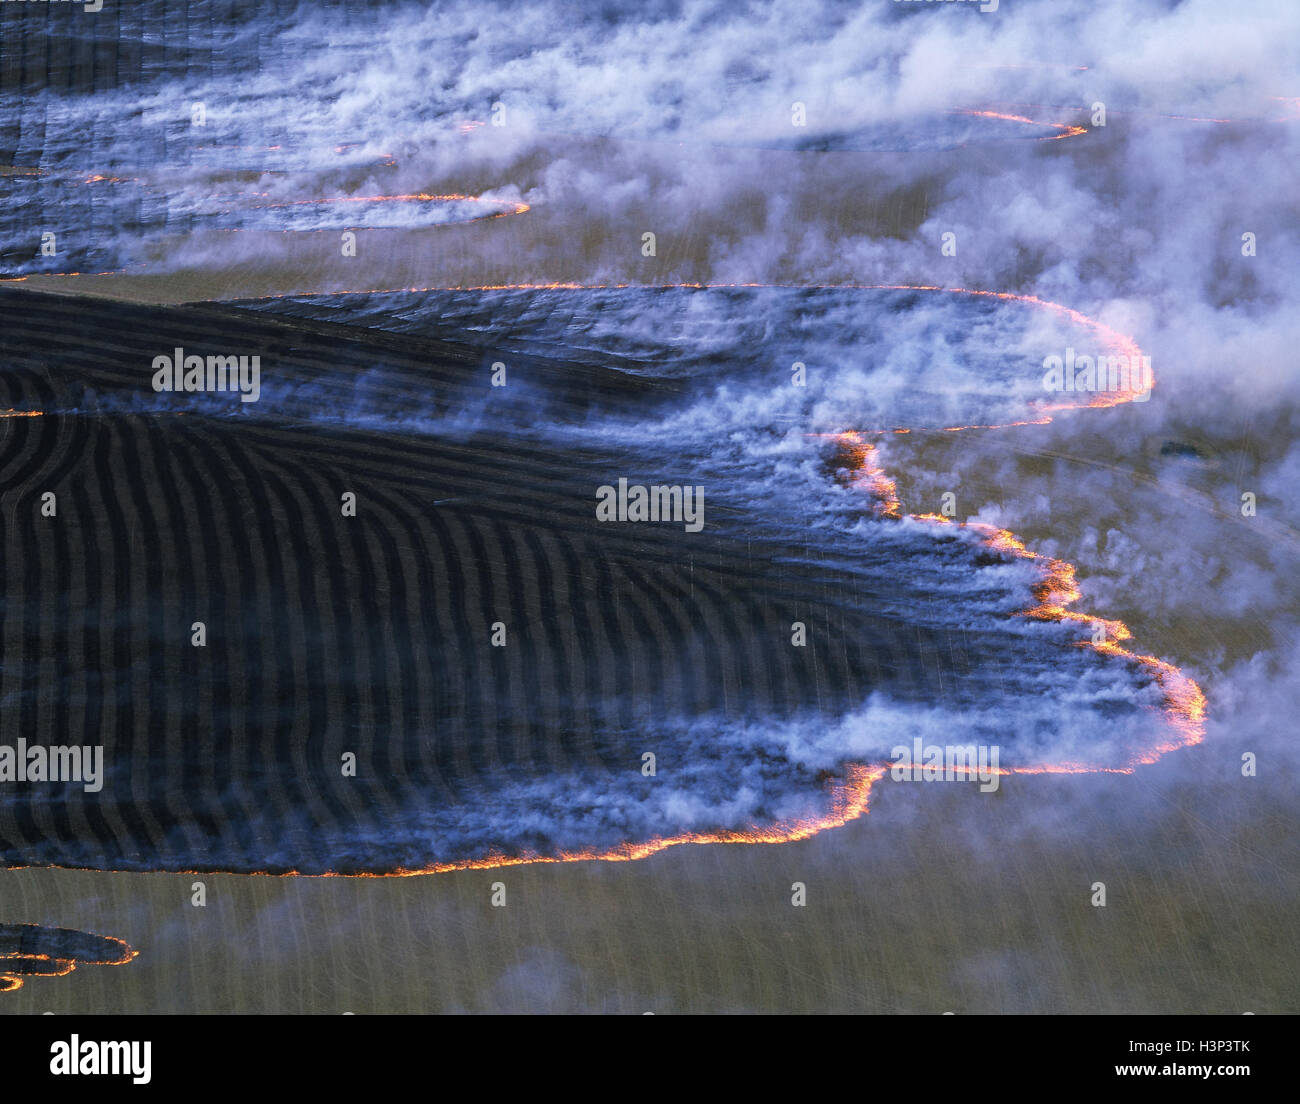 Fire on agricultural land, burning off. - Stock Image